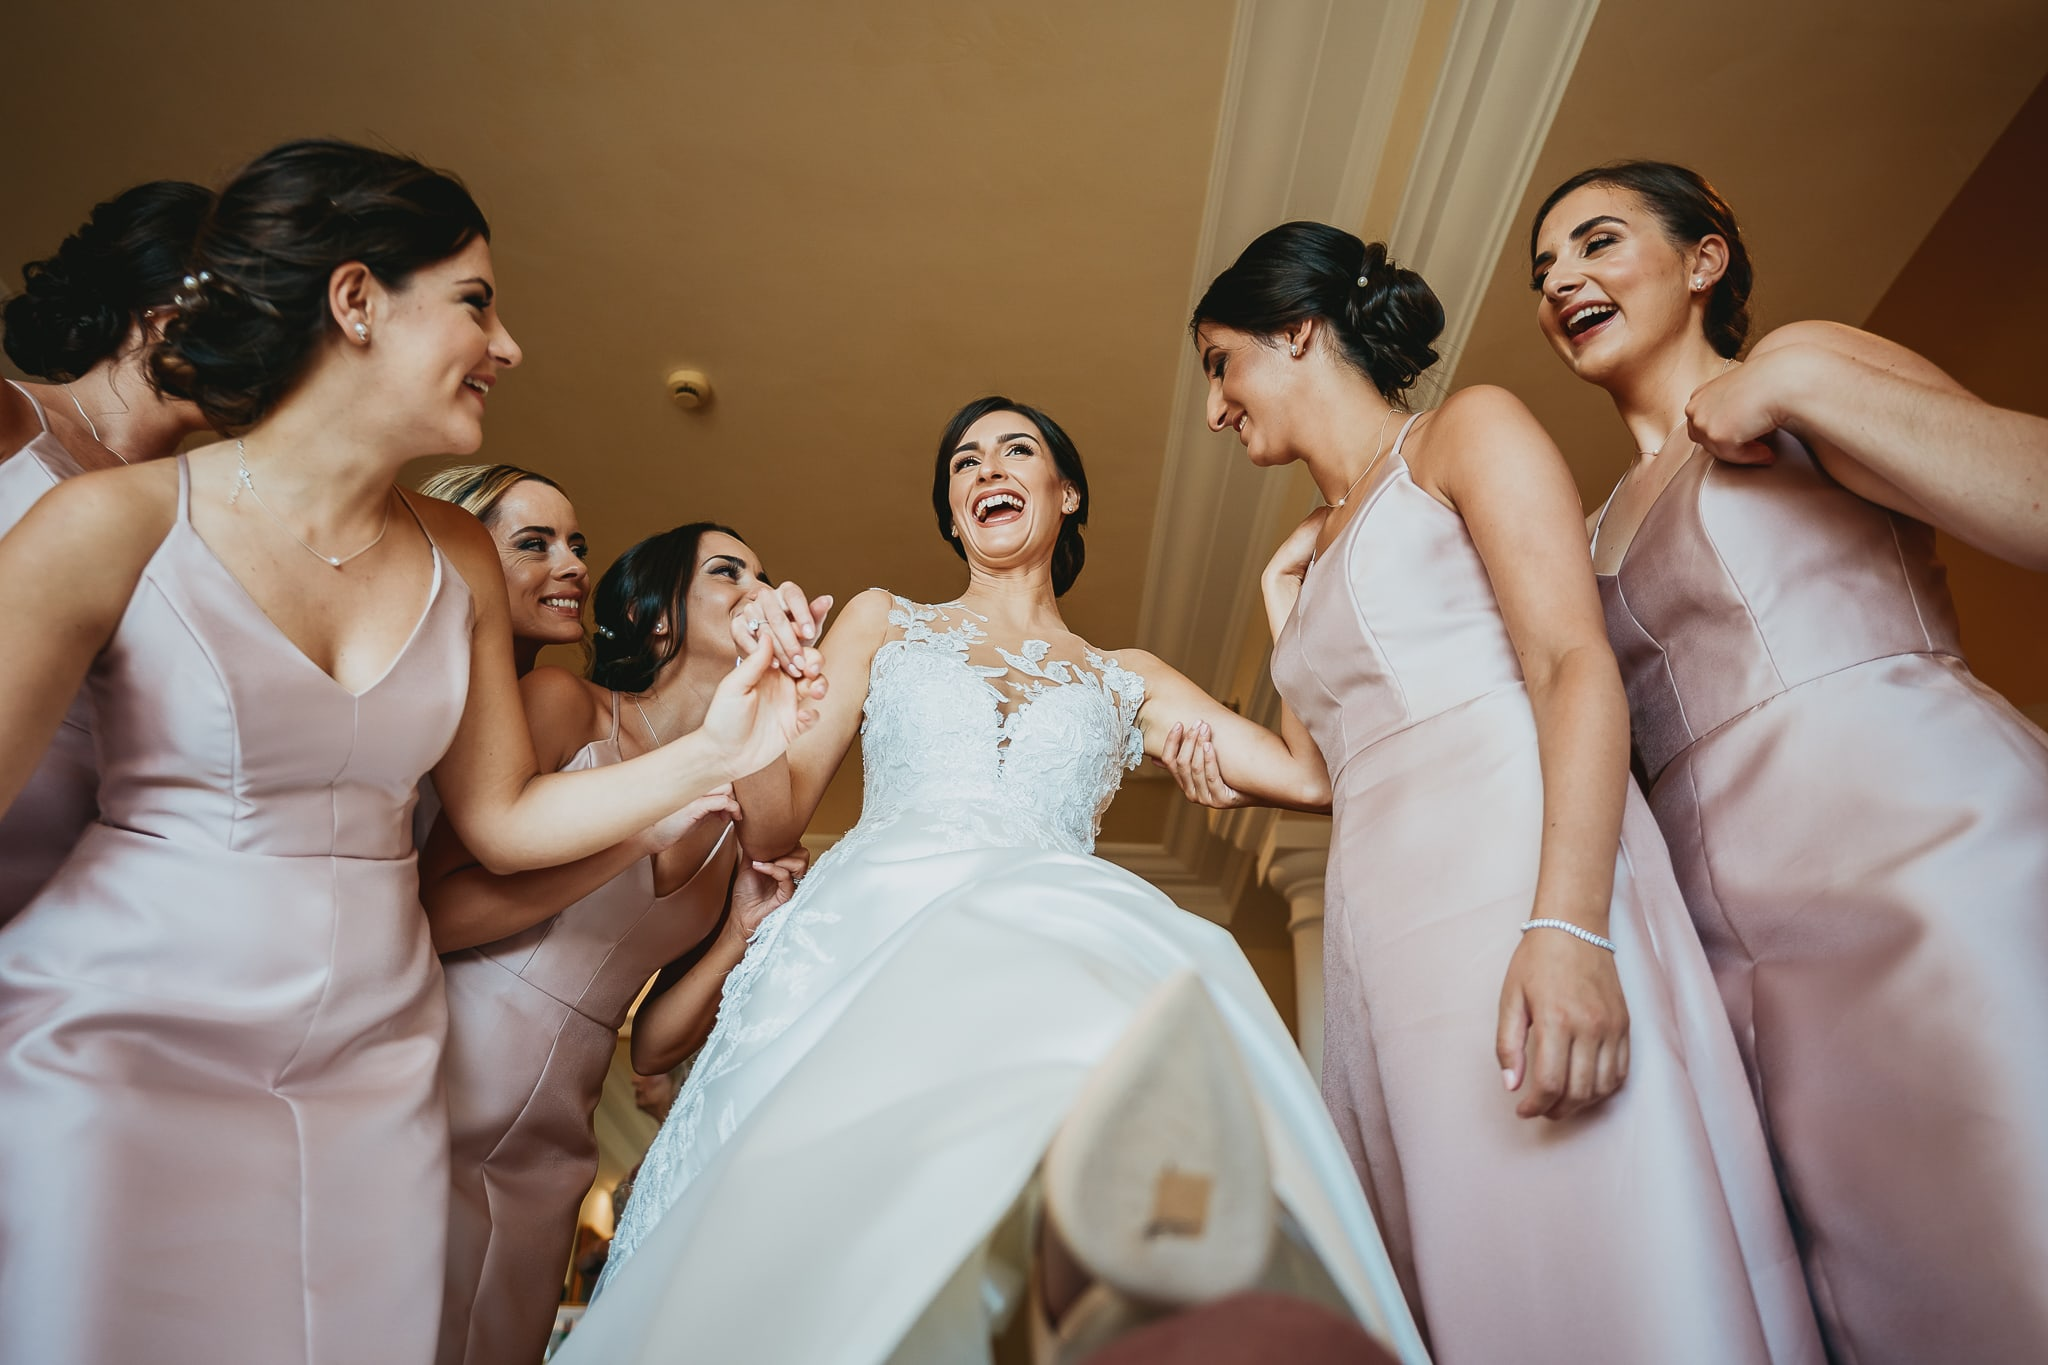 wedding photographers rome bride laughing with bridesmaids while getting dressed